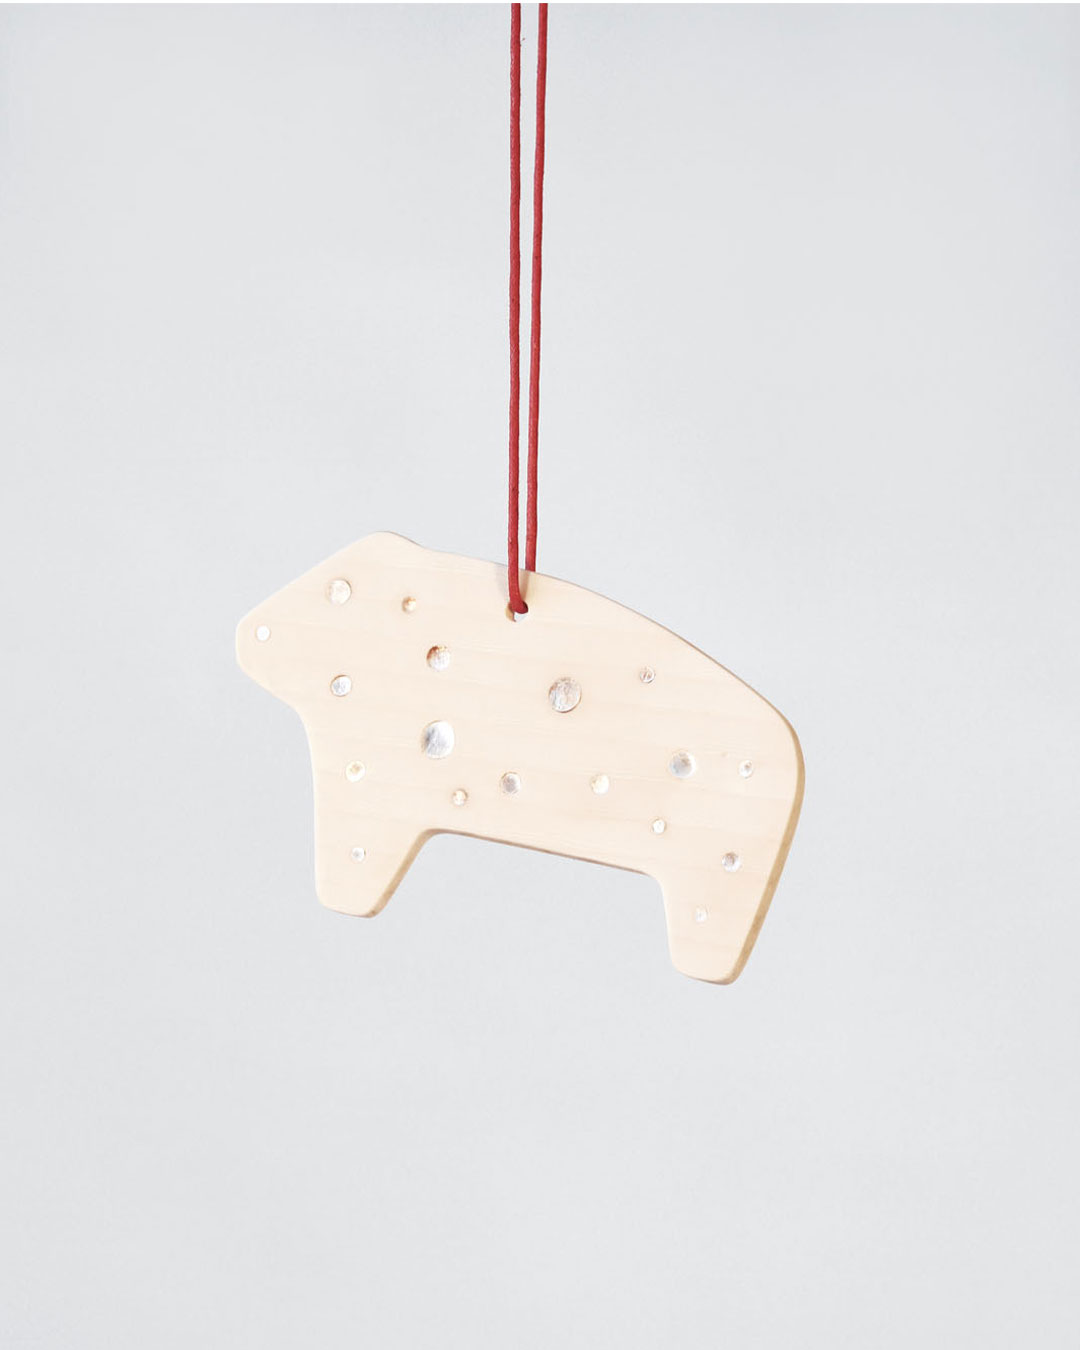 Julia Walter, Animal, 2014, pendant; Galalith, mother-of-pearl, cotton string, 120 x 70 x 5 mm, €1100